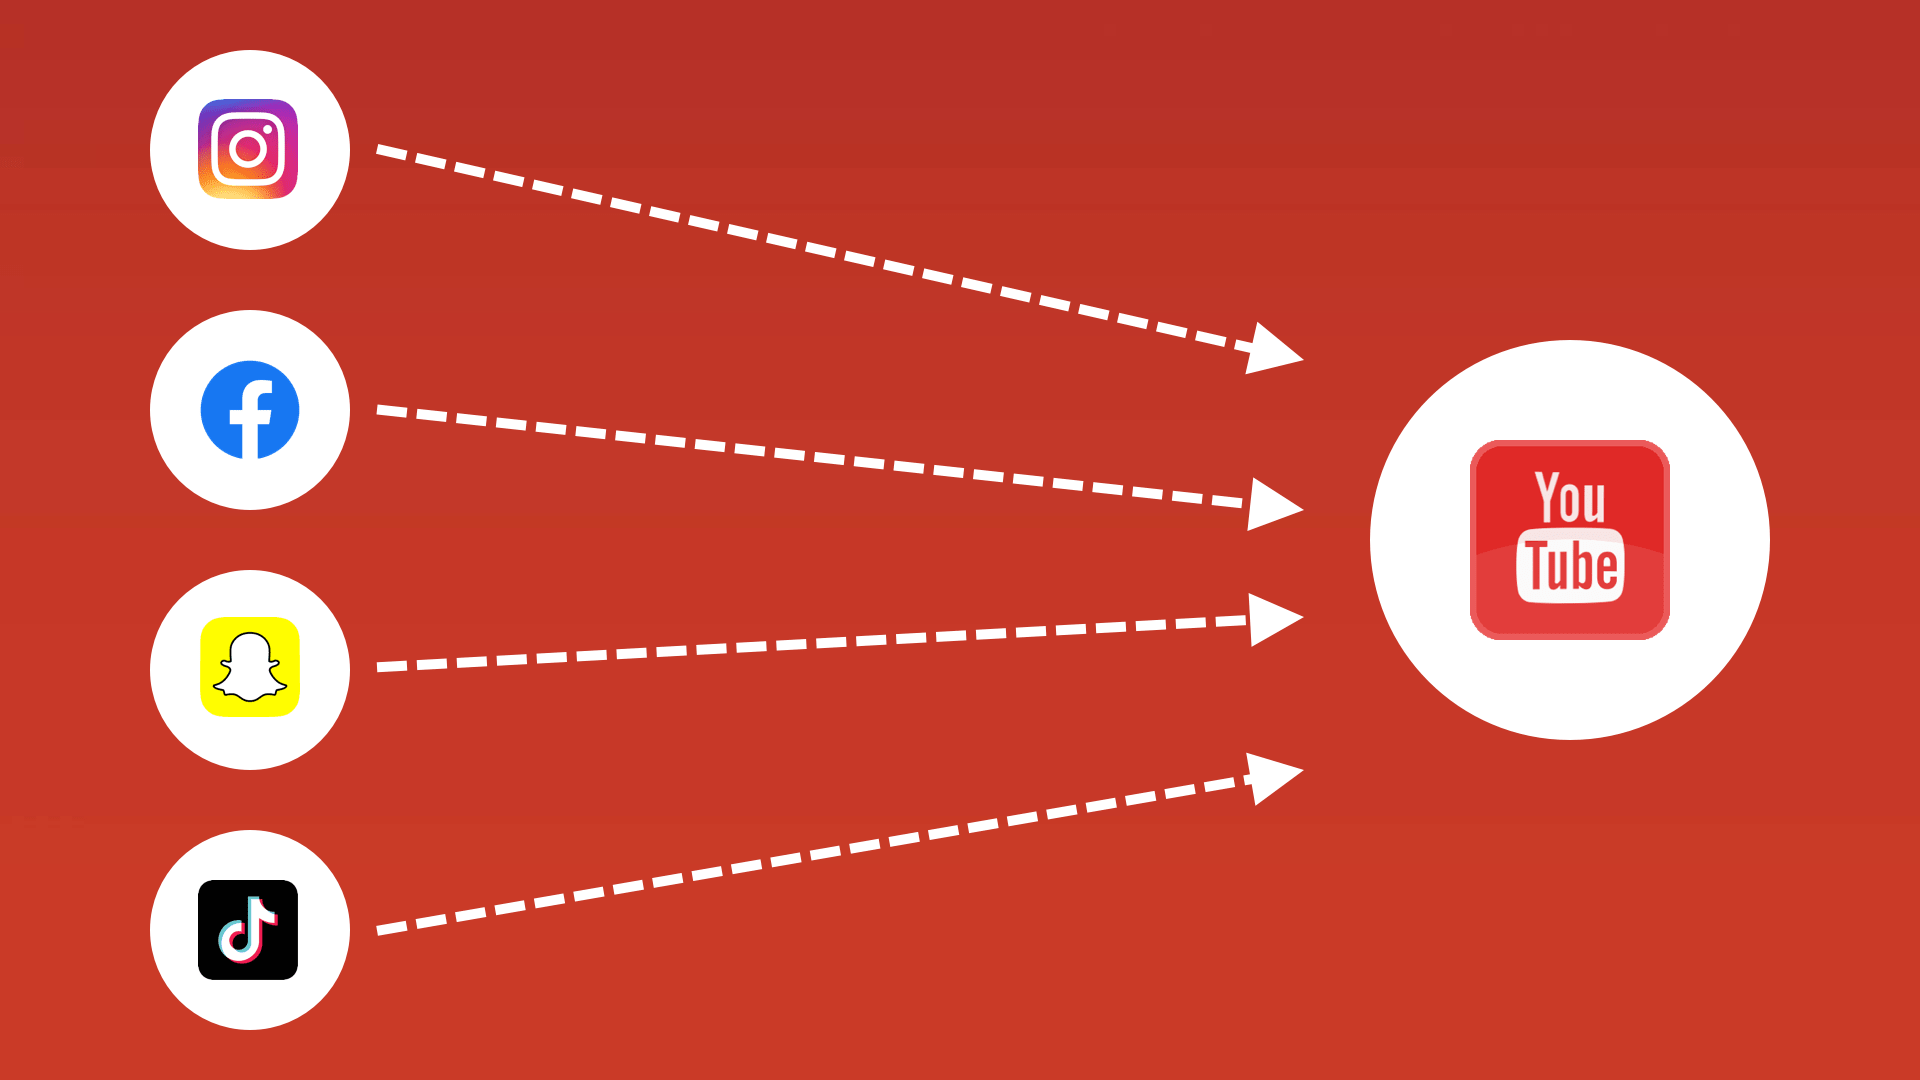 How to deep link to the YouTube app